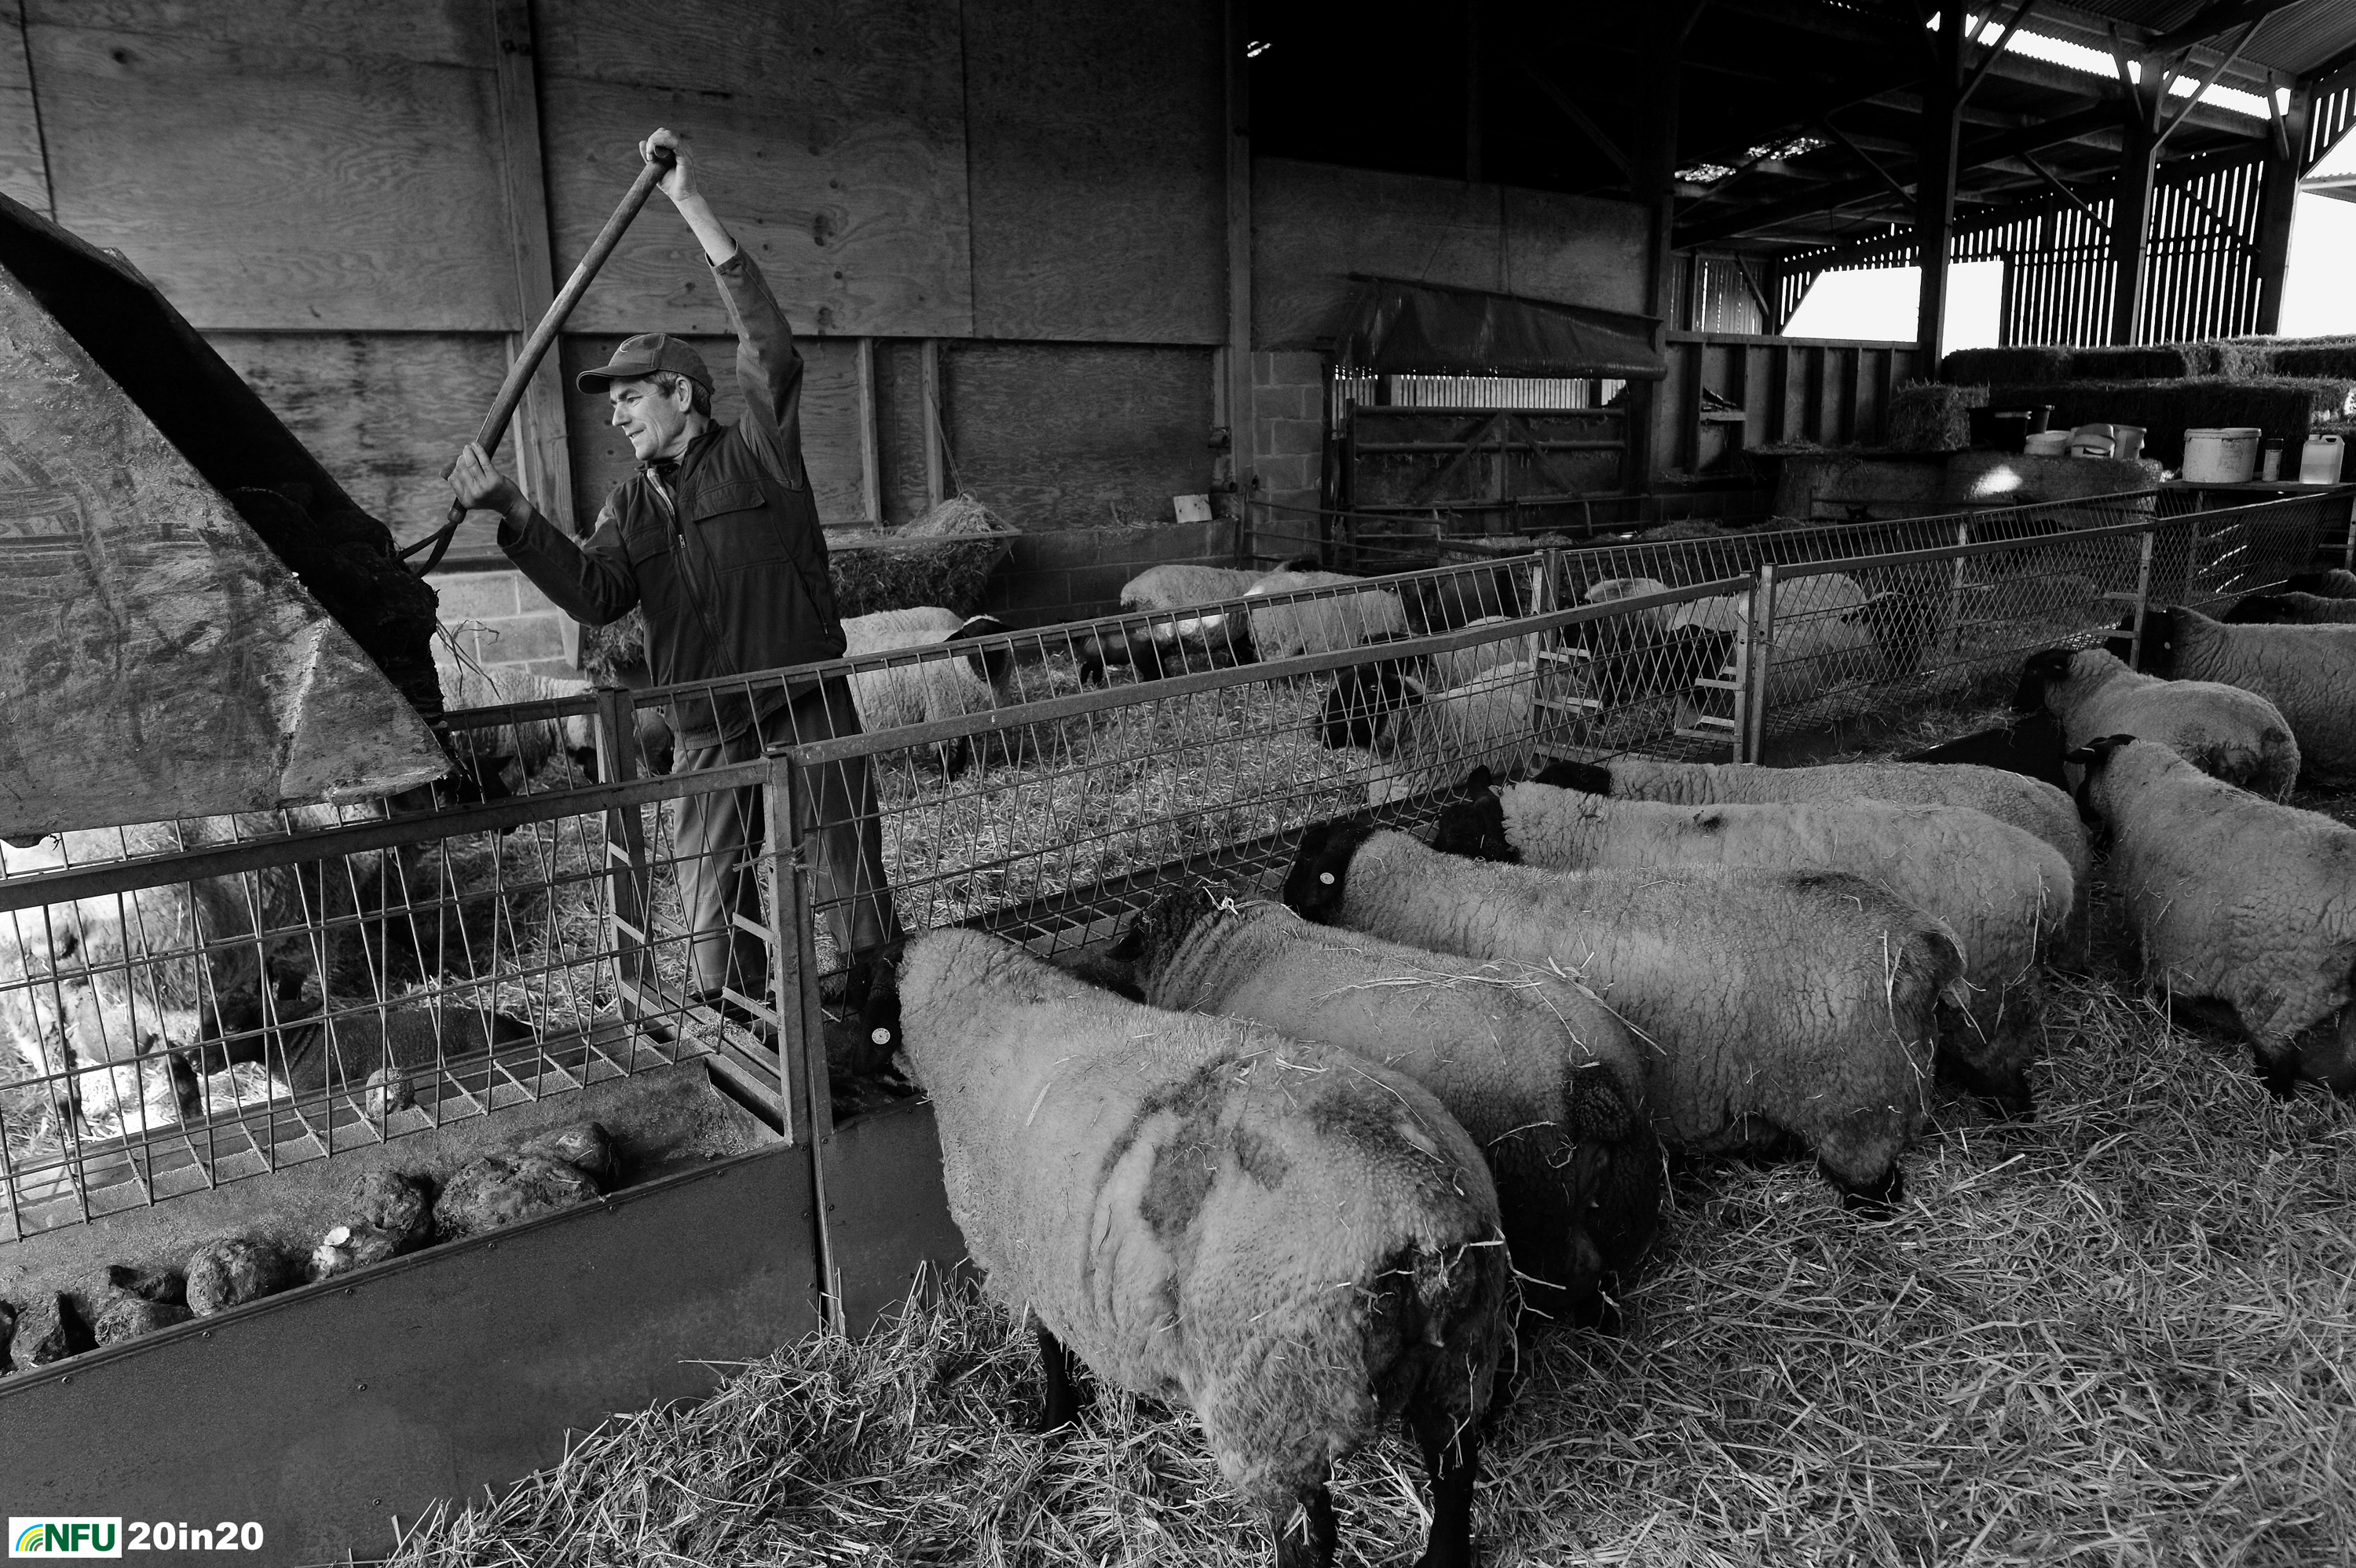 <h4>Suffolk lambs</h4><p>Chris Partridge feeding hungry expectant ewes at Kersey Tye. The flock includes Suffolk Sheep, part of the Suffolk Trinity that also includes the Suffolk Punch and Red Poll cattle. Photo: Nikon D4 + 24mm F1.8 1/400 @ F5 ISO 1000</p><p>Warren's comments: <em>Lambing - not exactly a precise science I was to discover. I went over to Kersey Tye and spent the afternoon in the farmyard waiting for a birth. No newborn lambs were forthcoming unfortunately, so I took shots of the activity in the pens. Sadly, I never got to go back and try again because of the Covid-19 lockdown.</em></p>